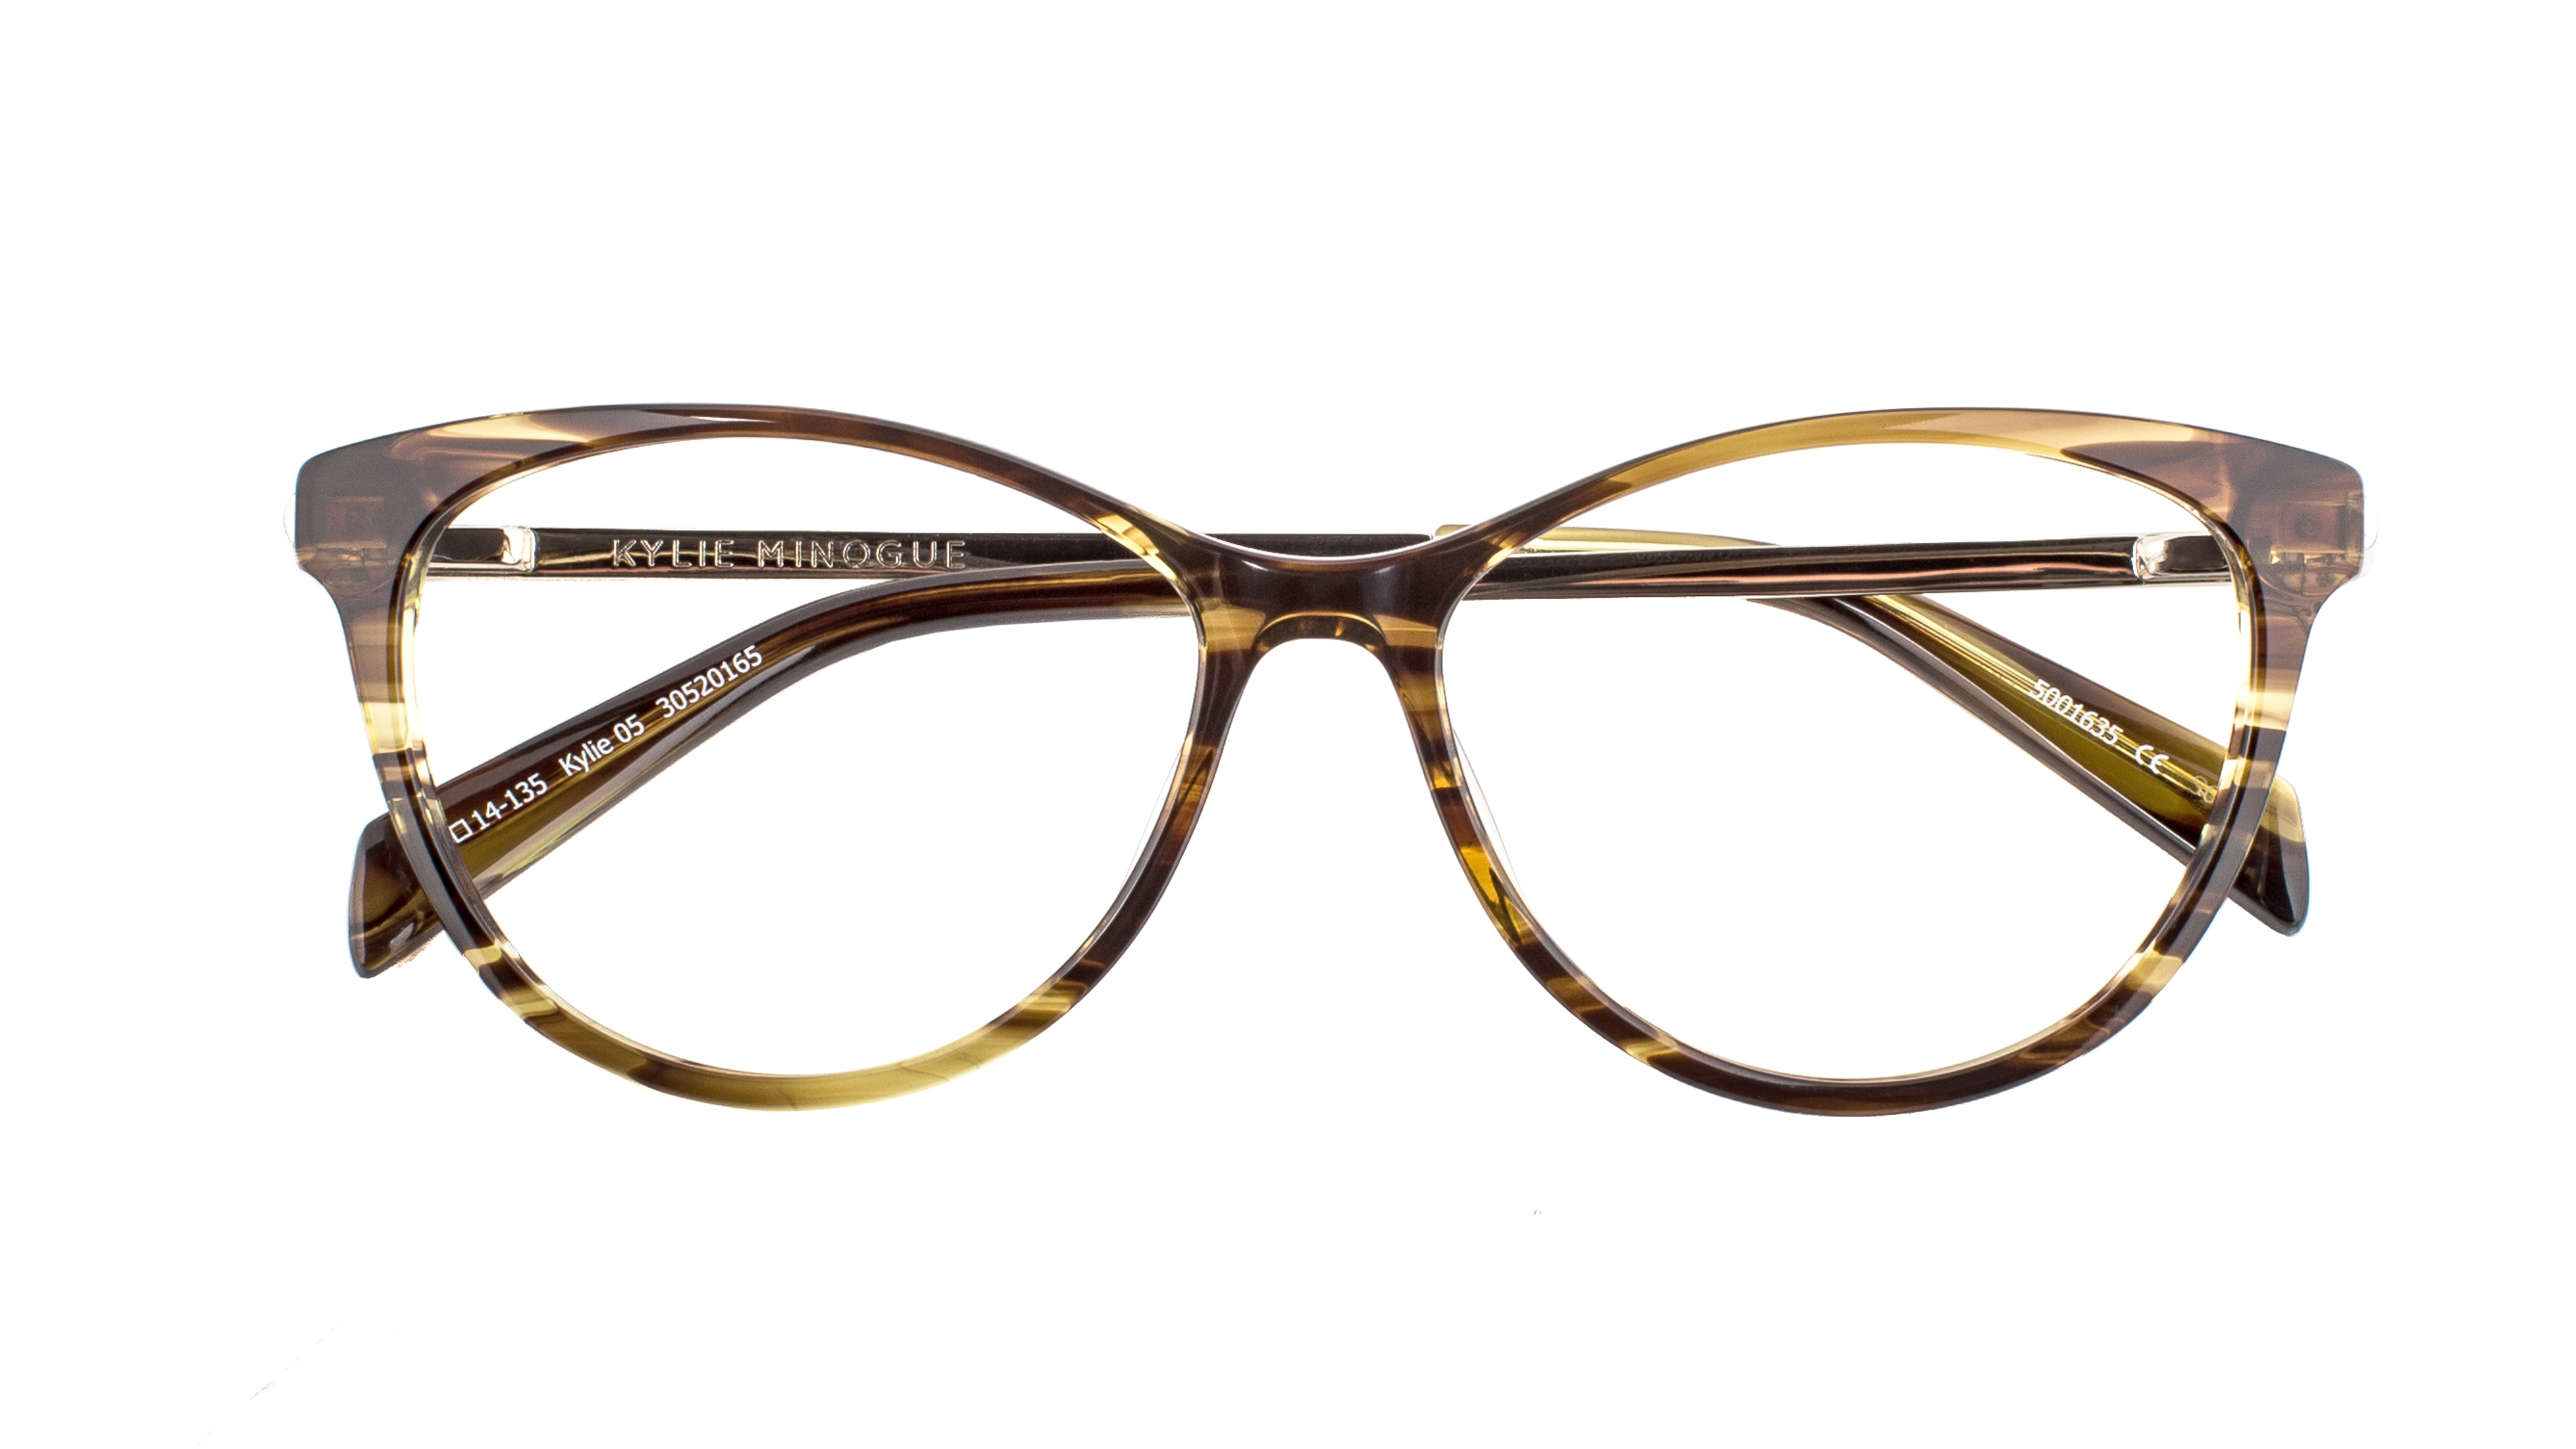 Kylie Minogue Eyewear_Kylie 05_SKU 30520165_RRP 2 pairs from $299